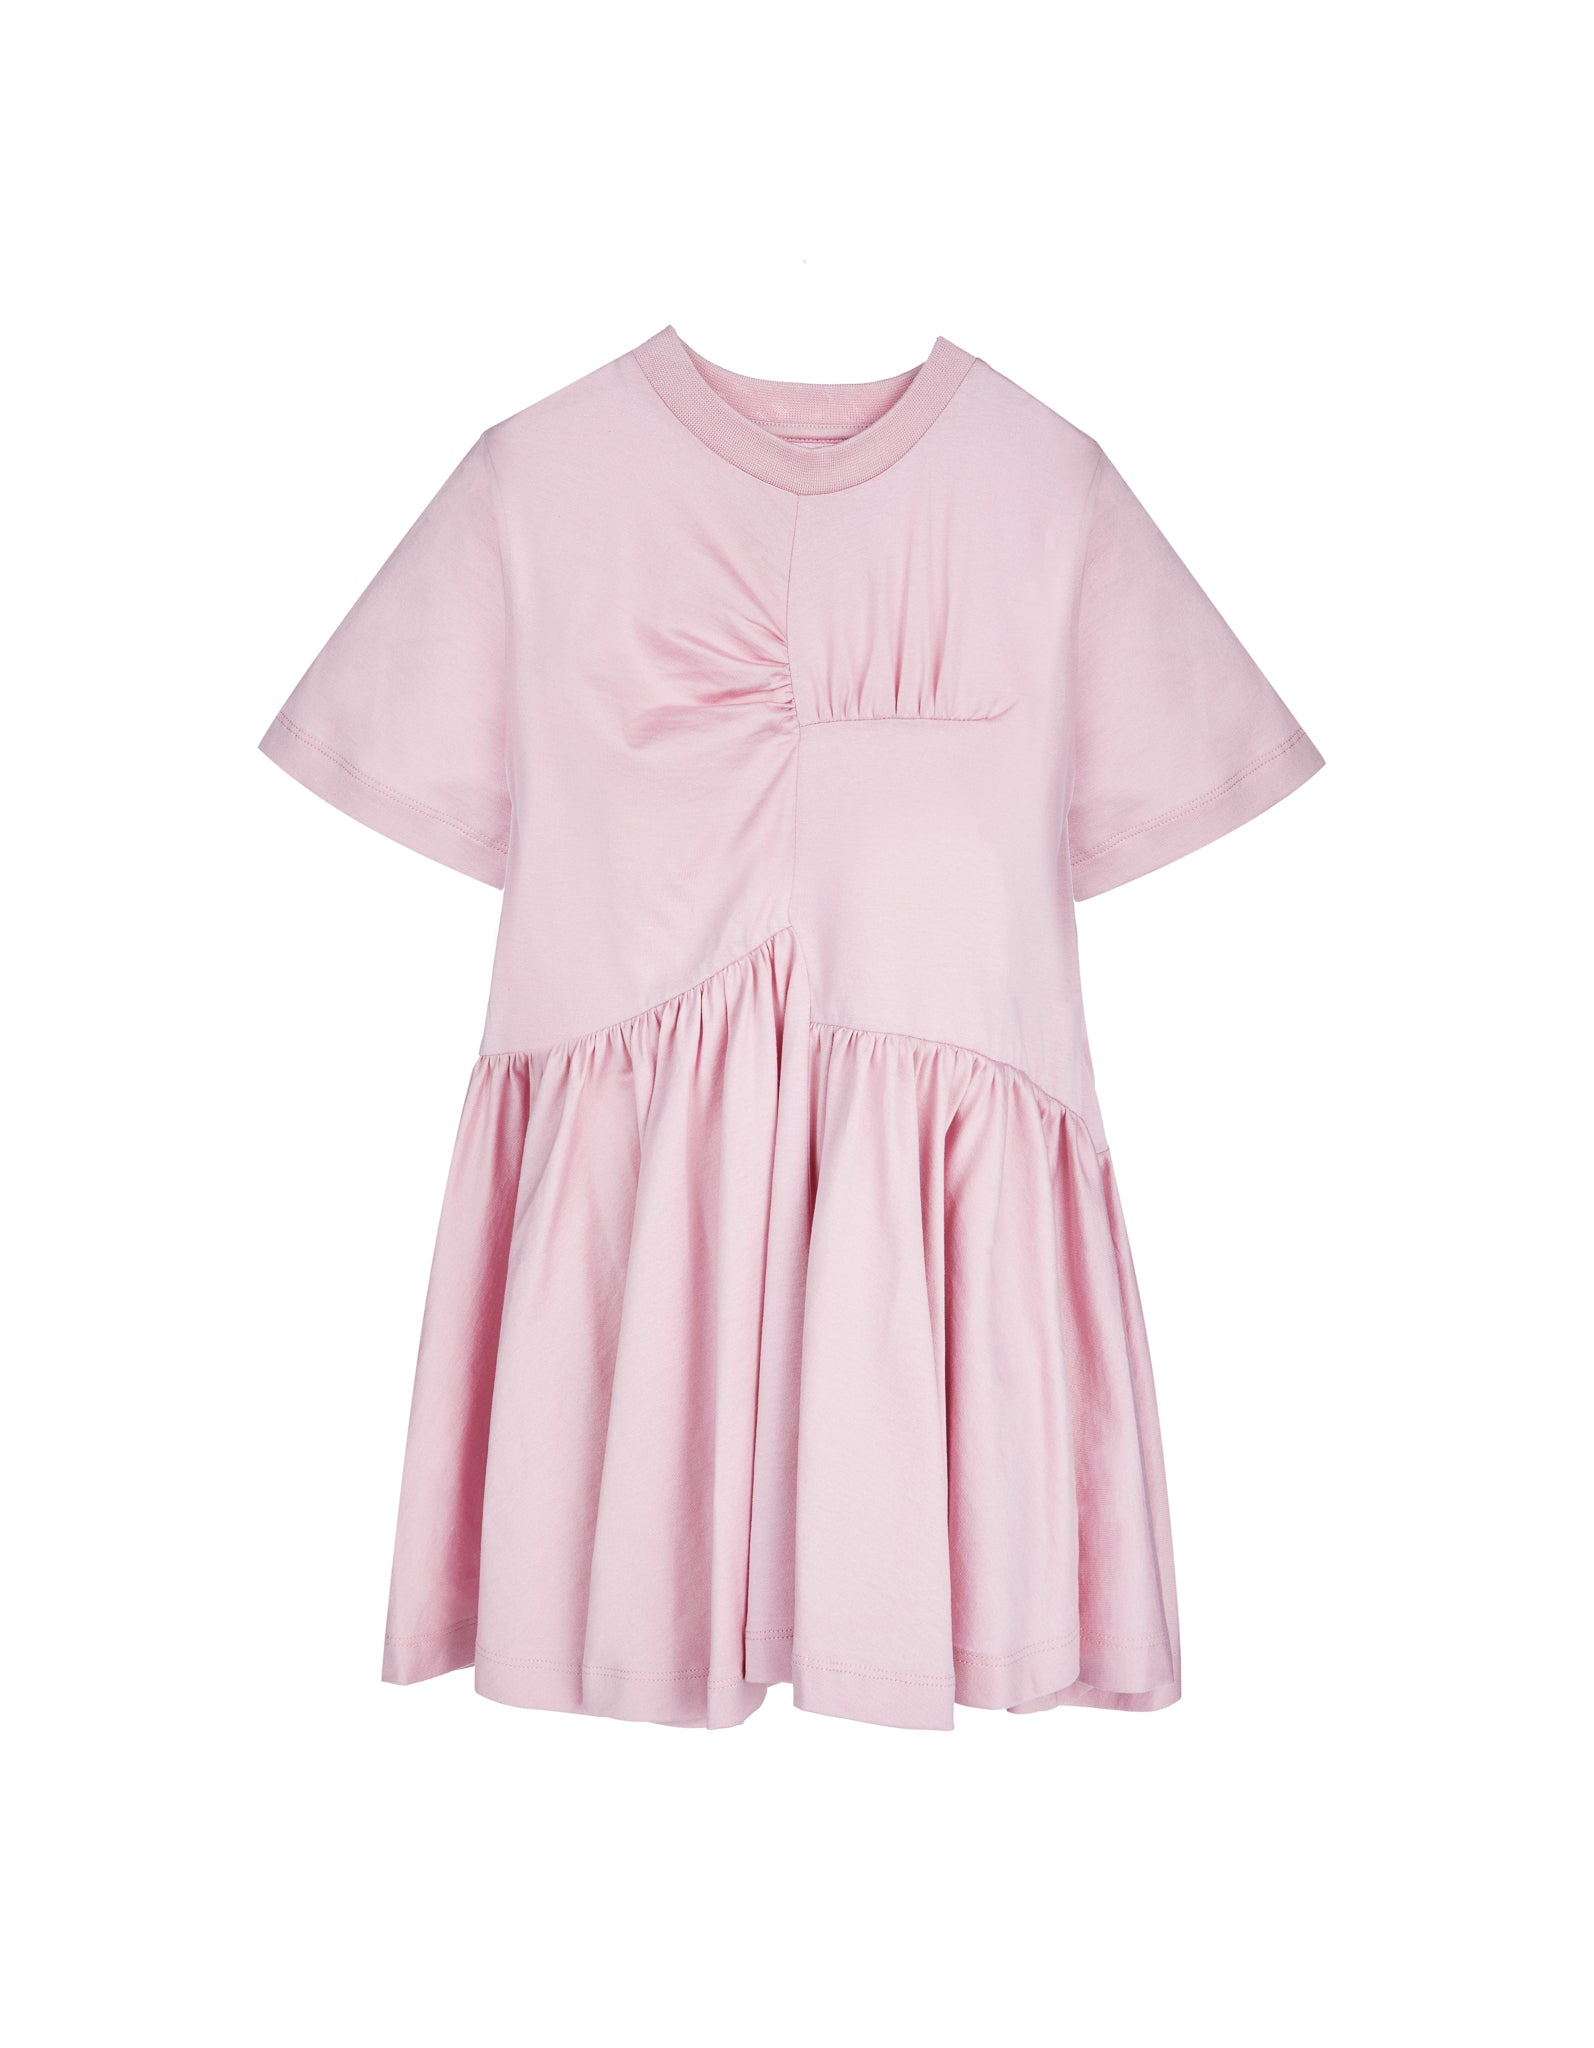 GATHERED SEAMS DRESS IN PINK